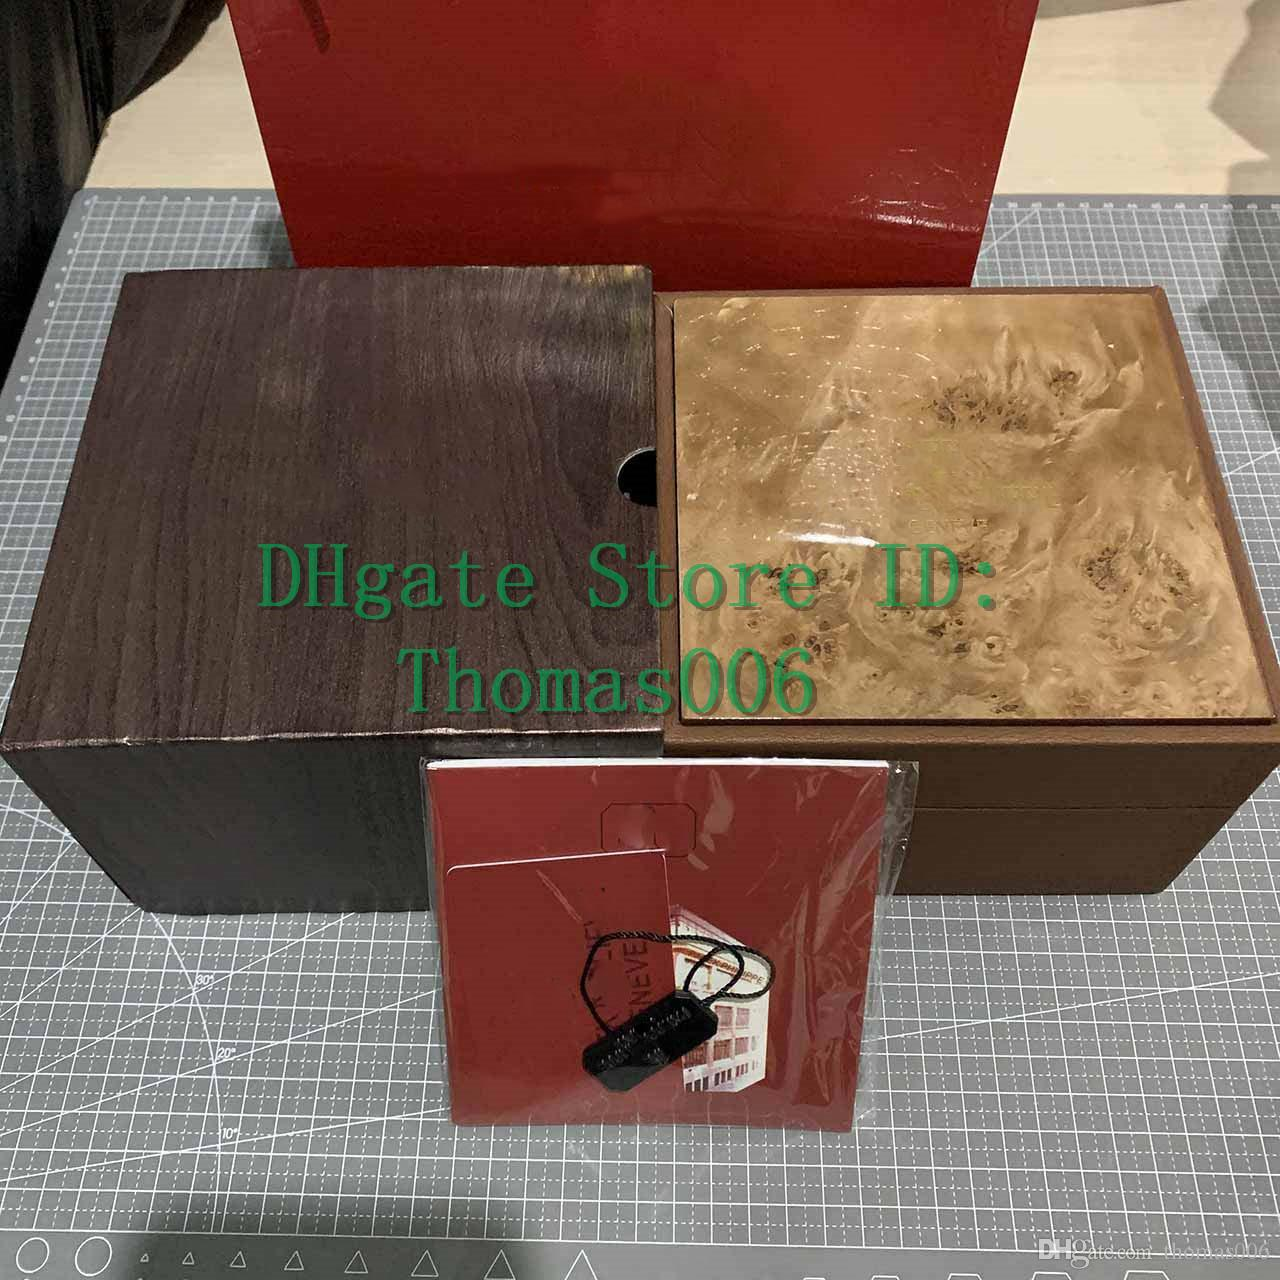 Wholesale New Watch brown Box New Square brown box For PP Watches Box Whit Booklet Card Tags And Papers In English Gift Boxes